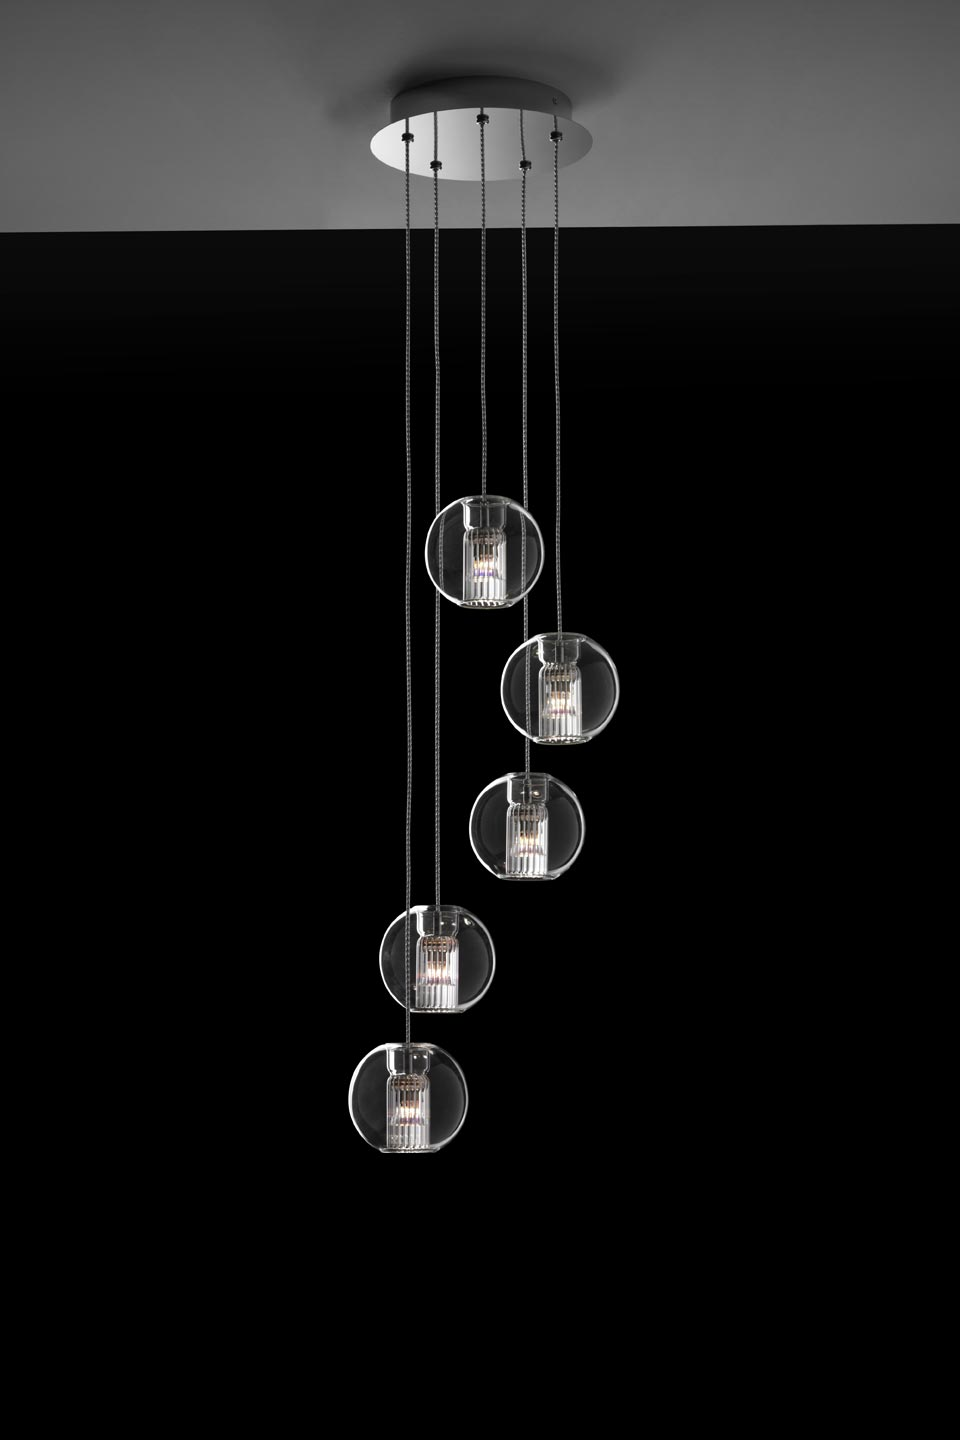 suspension fairy 5 boules en verre borosilicate transparent r f 16100103. Black Bedroom Furniture Sets. Home Design Ideas